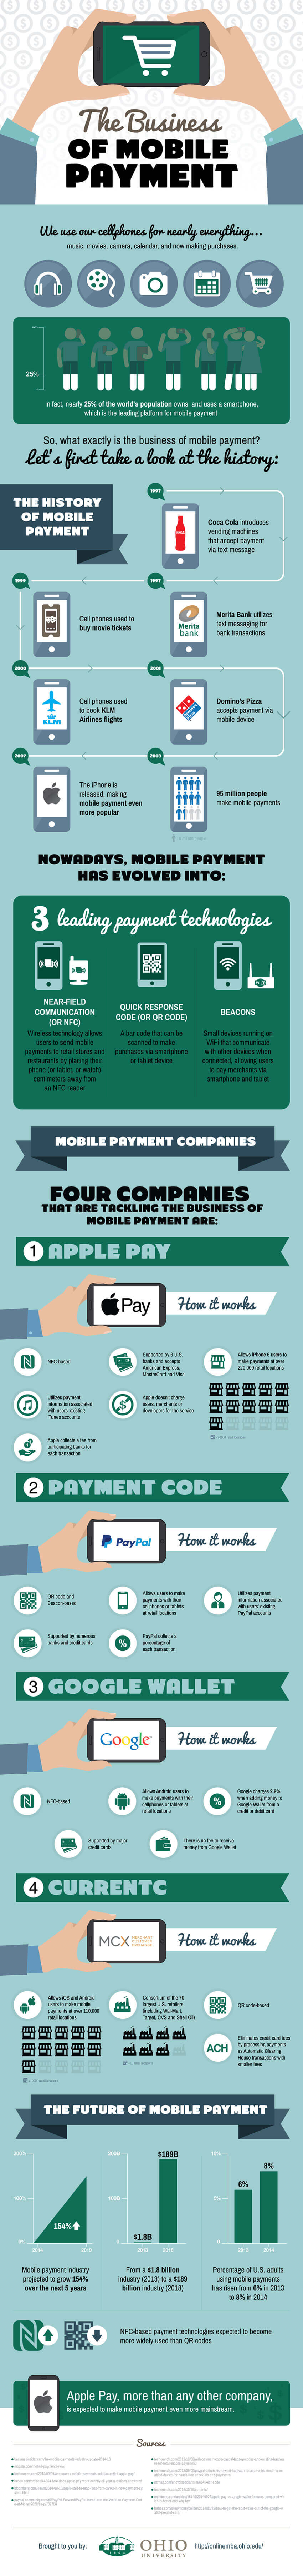 The Business of Mobile Payment Infographic